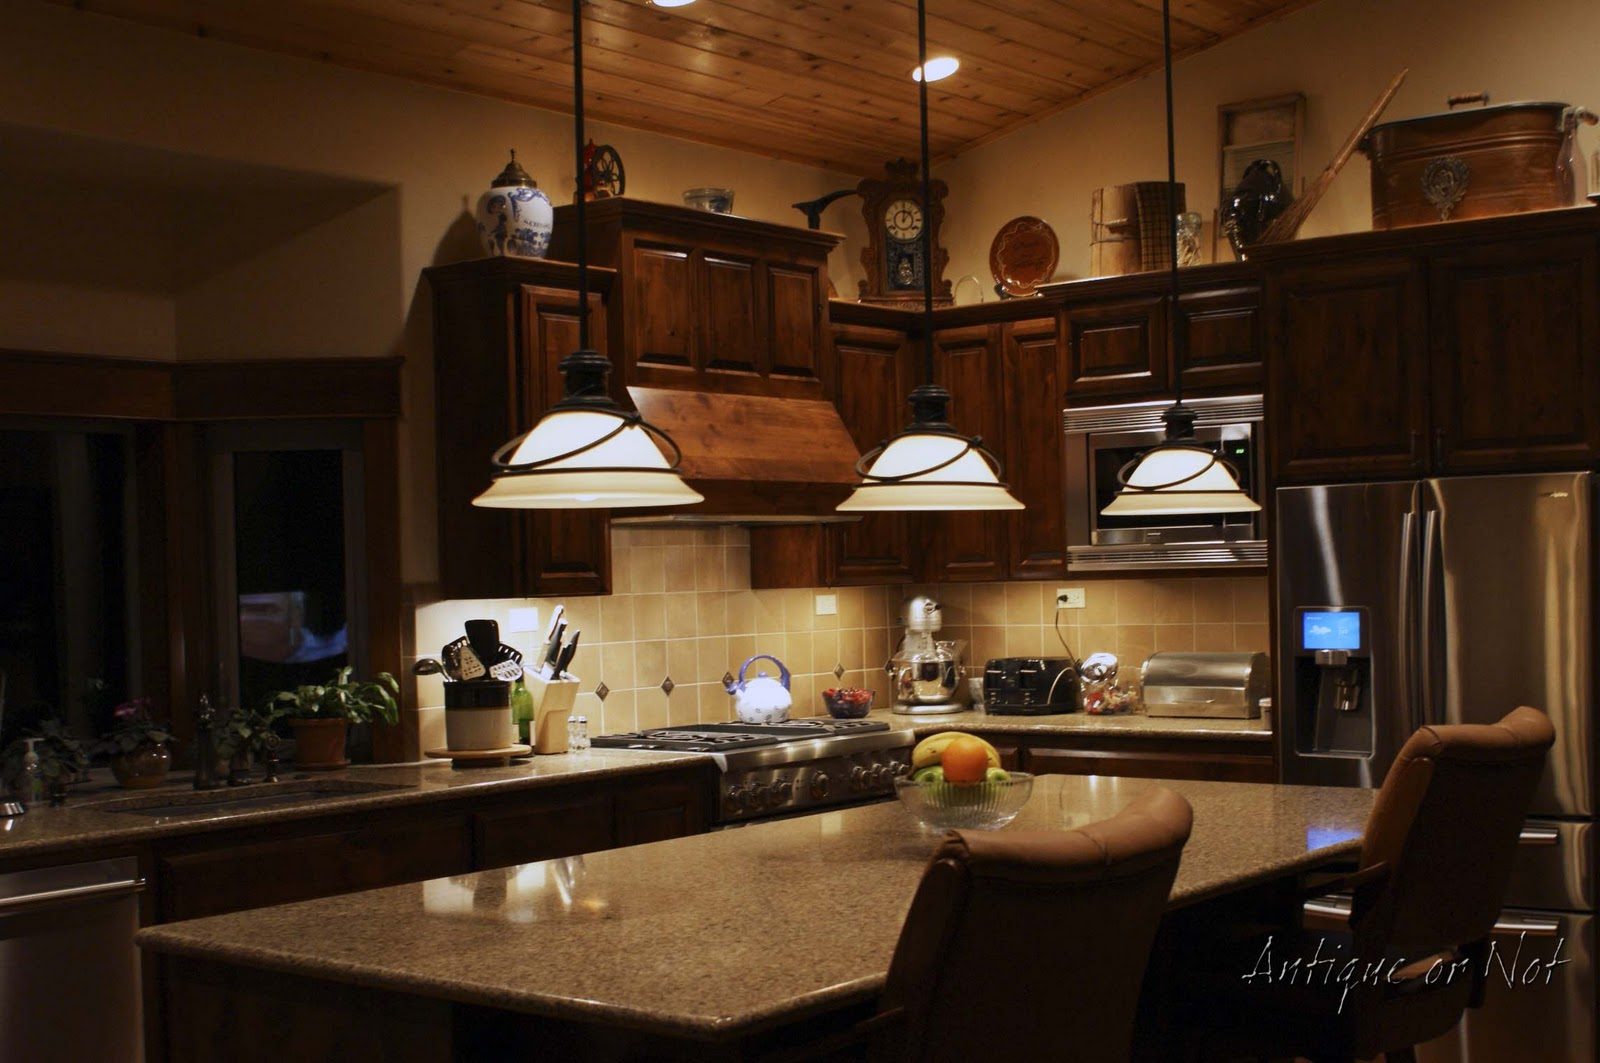 Decorating Above Kitchen Cabinets Antique Or Not Decorating Above Your Cabinets